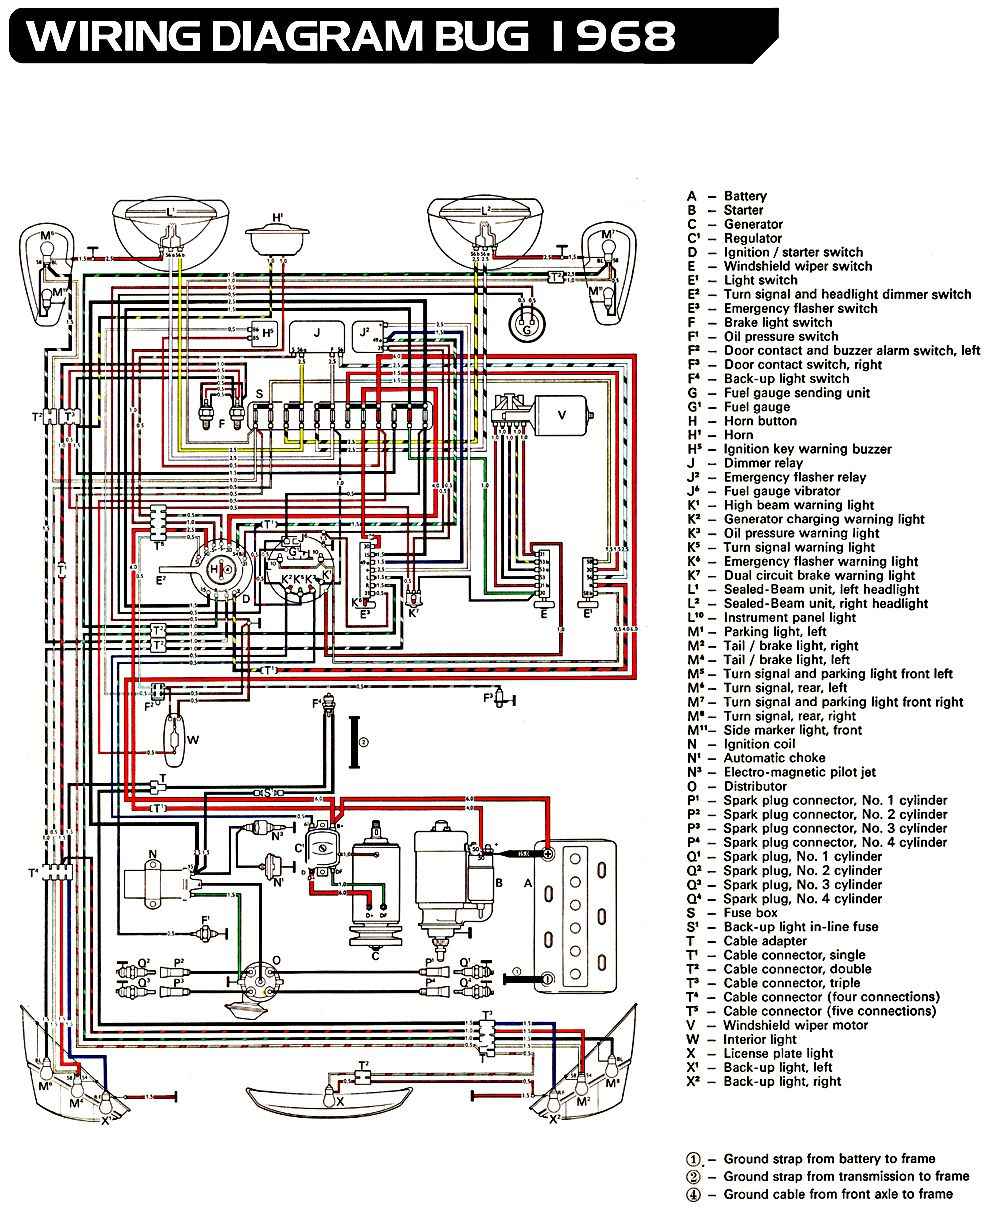 3a1908112d3826270ed5e3be362292bf vw bug ignition wiring diagram 73 vw wiring diagram free wiring diagram for 1973 vw thing at alyssarenee.co